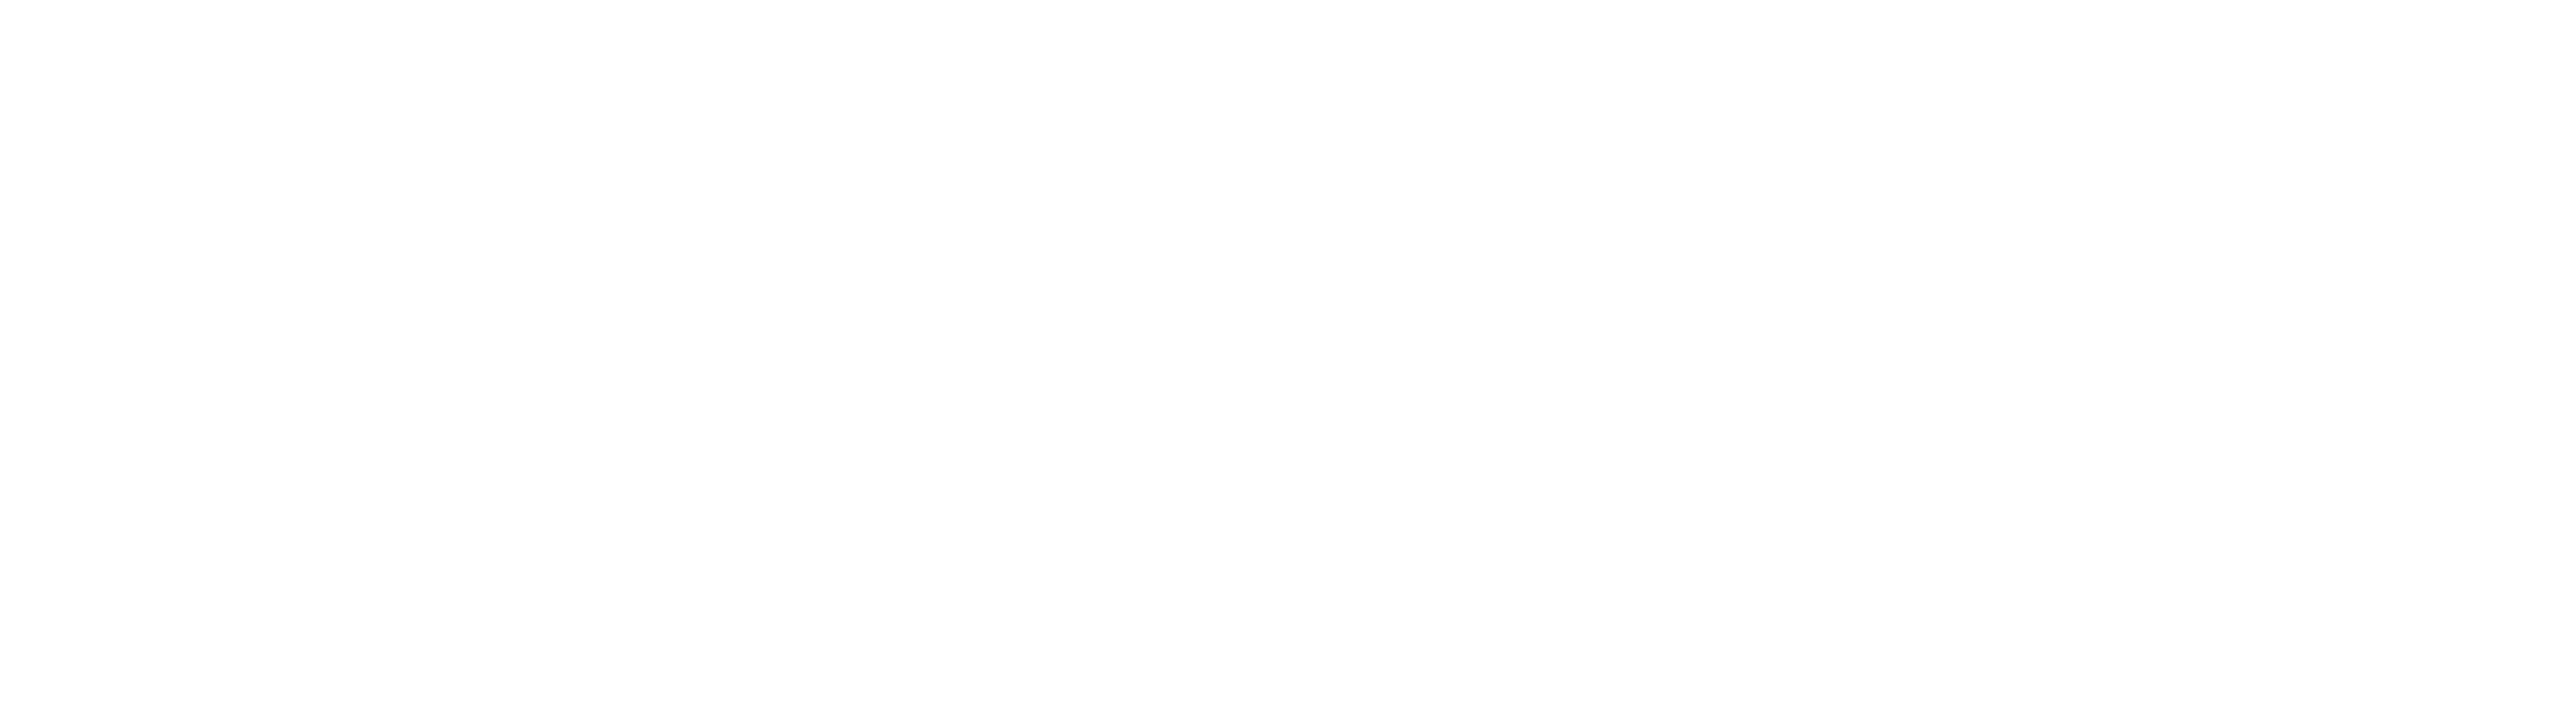 Resource One Credit Union Logo